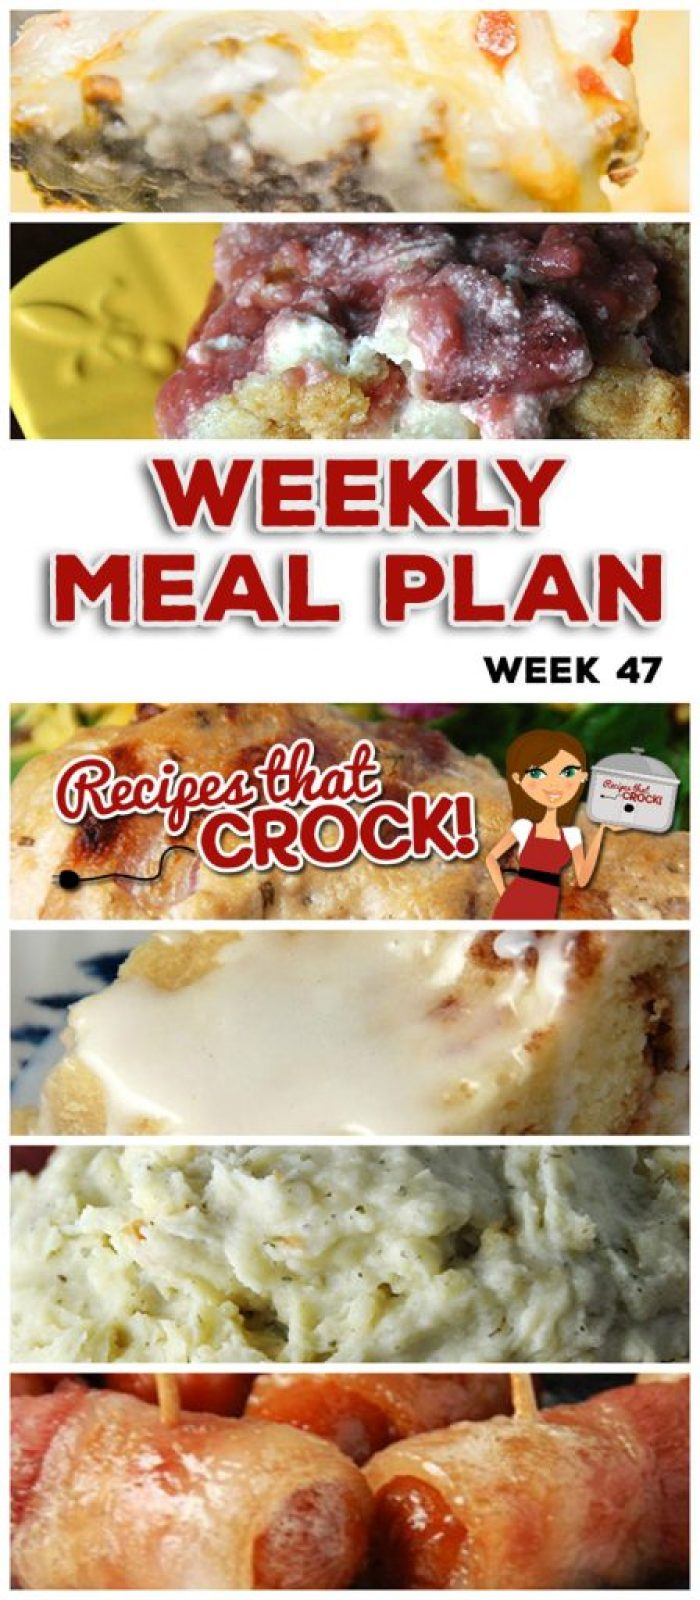 This week's weekly menu features Crock Pot Meatloaf Parmesan, Crock Pot Green Bean Casserole, Crock Pot Garlic Bacon Chicken, Garlic Ranch Crock Pot Mashed Potatoes, Beefy Cheesy Taco Soup, Crock Pot Bacon Mushroom Pork Roast, Crock Pot Cheeseburgers, Roasted Garlic French Fries, Crock Pot Glazed Coffee Cake, Crock Pot Bacon Brown Sugar Sausages and Crock Pot Strawberry Cream Dump Cake!